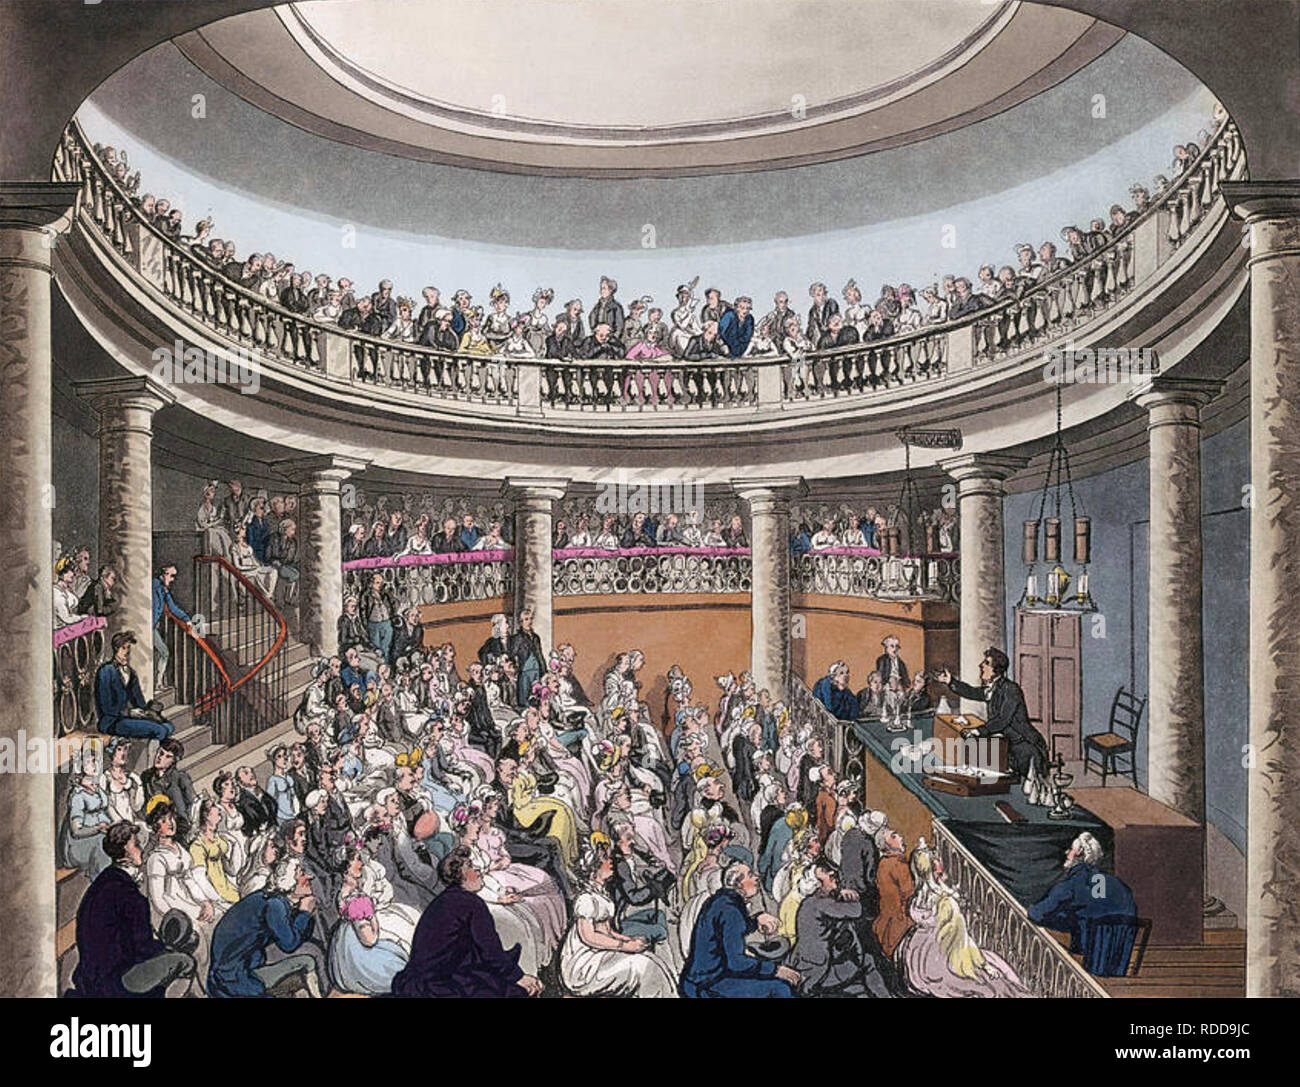 HUMPHREY DAVY (1778-1829) Cornish chemist and inventor lecturing at the Surrey Institution in the Rotunda near Blackfriars Bridge,London, about 1808 - Stock Image